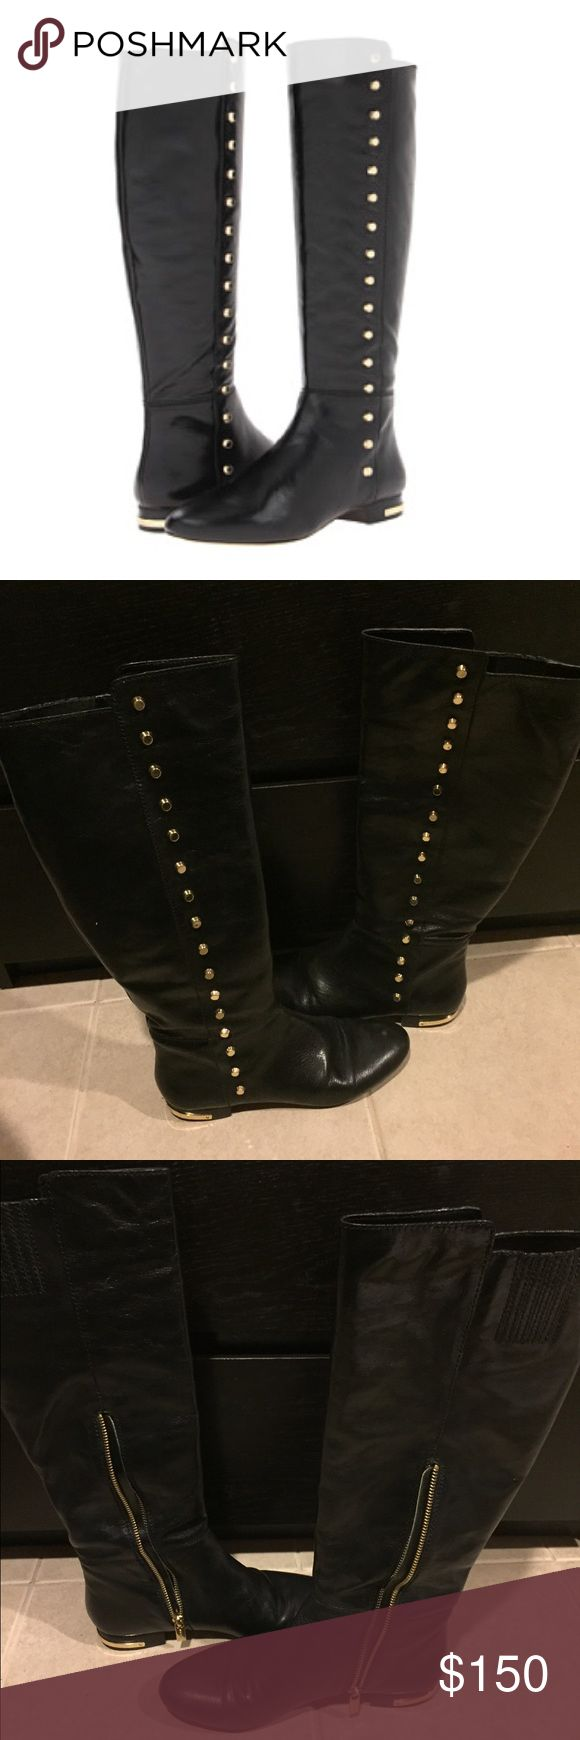 """Studded MK boots Studded MK boots.. hits a little below the knee so I wouldn't exactly call these """"knee high boots"""" ..some minor scuffs in front of boots but can be fixed with some black shoe polish. some minor scratches on gold hardware (studs) and the gold hardware on the heel came loose (as shown in last picture). rarely wore these boots, that's why I'm selling but still in good condition. I have original box but might not be able to ship in box due to size .. paid $295 plus tax .. open…"""